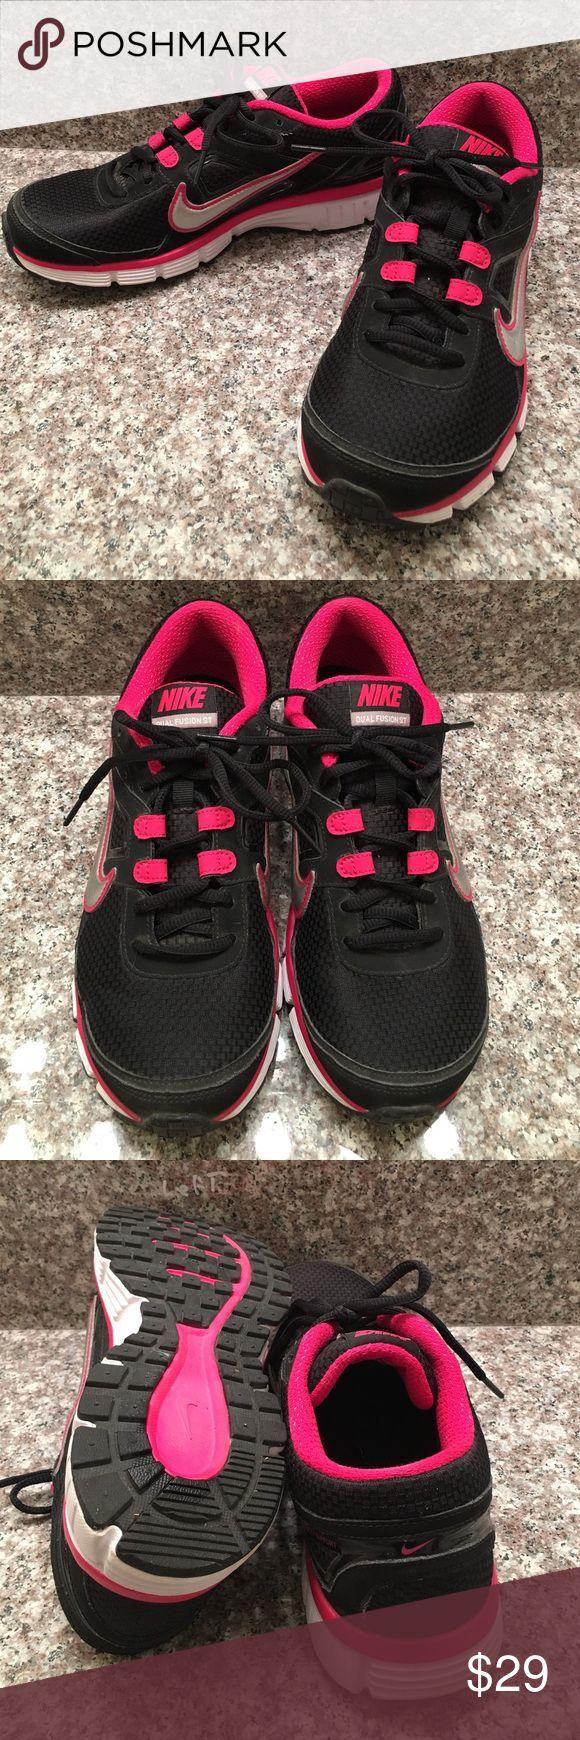 NIKE Dual Fusion Stability Support Shoes US 10 Great running shoes with good support💕❤️💕US 10💕❤️💕Black and Pink with silver swoosh💕❤️💕very good used condition and very gently worn💕❤️💕happy poshing friends💕❤️💕 Nike Shoes Athletic Shoes